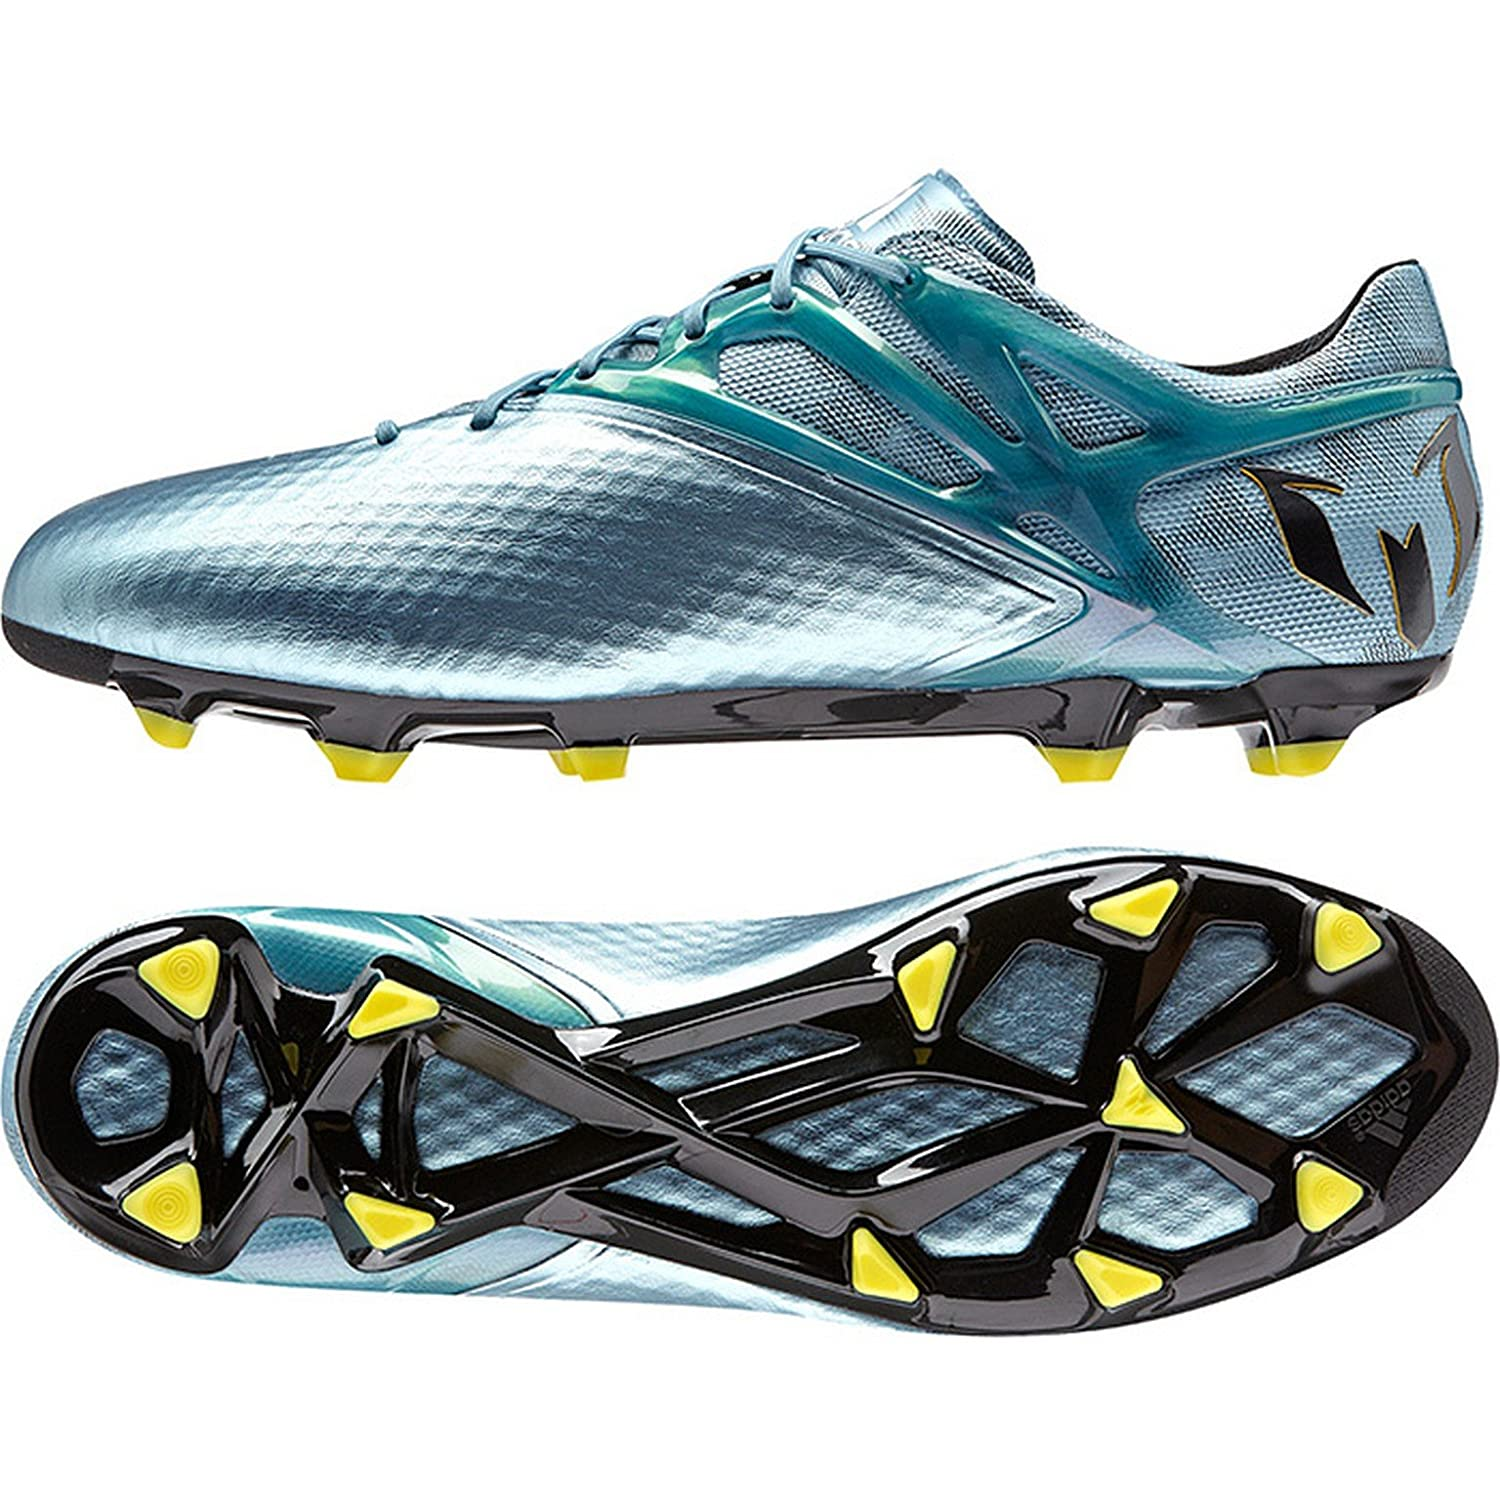 0ba735d60 Adidas Men s Messi 15.1 FG AG Football Boots  Buy Online at Low Prices in  India - Amazon.in